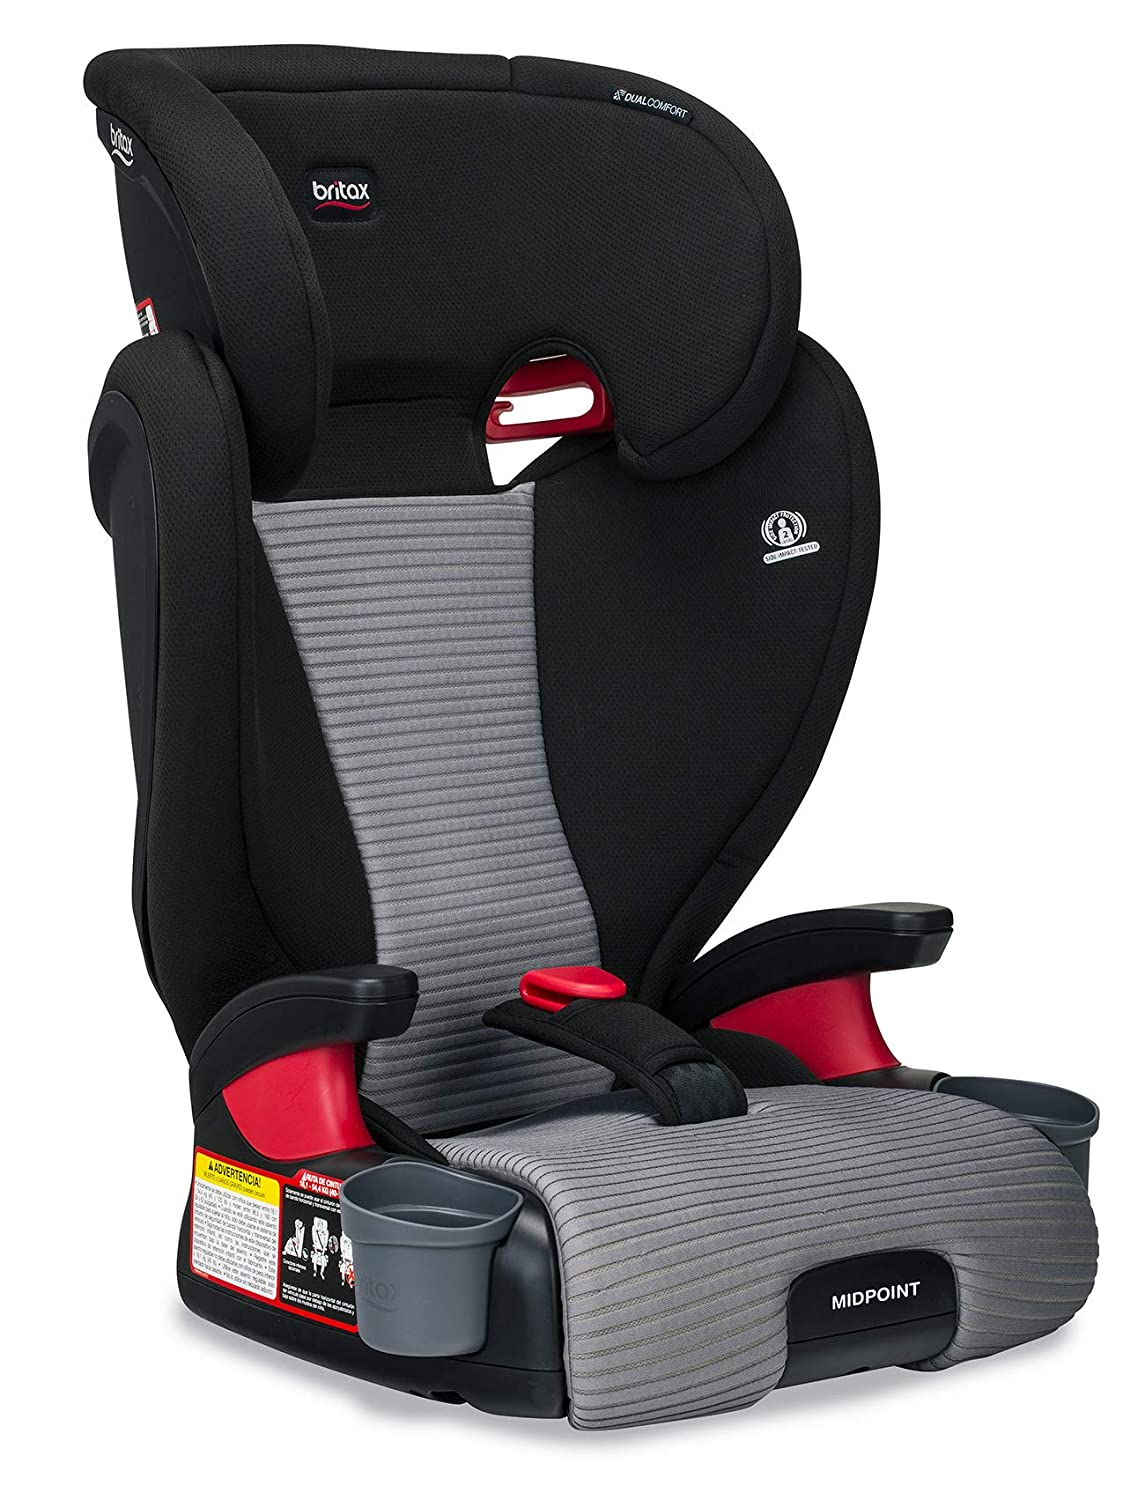 Britax Midpoint Belt-Positioning Booster Seat – 2 Layer Impact Protection – 40 to 120 pounds – DualComfort Moisture Wicking Fabric, Gray